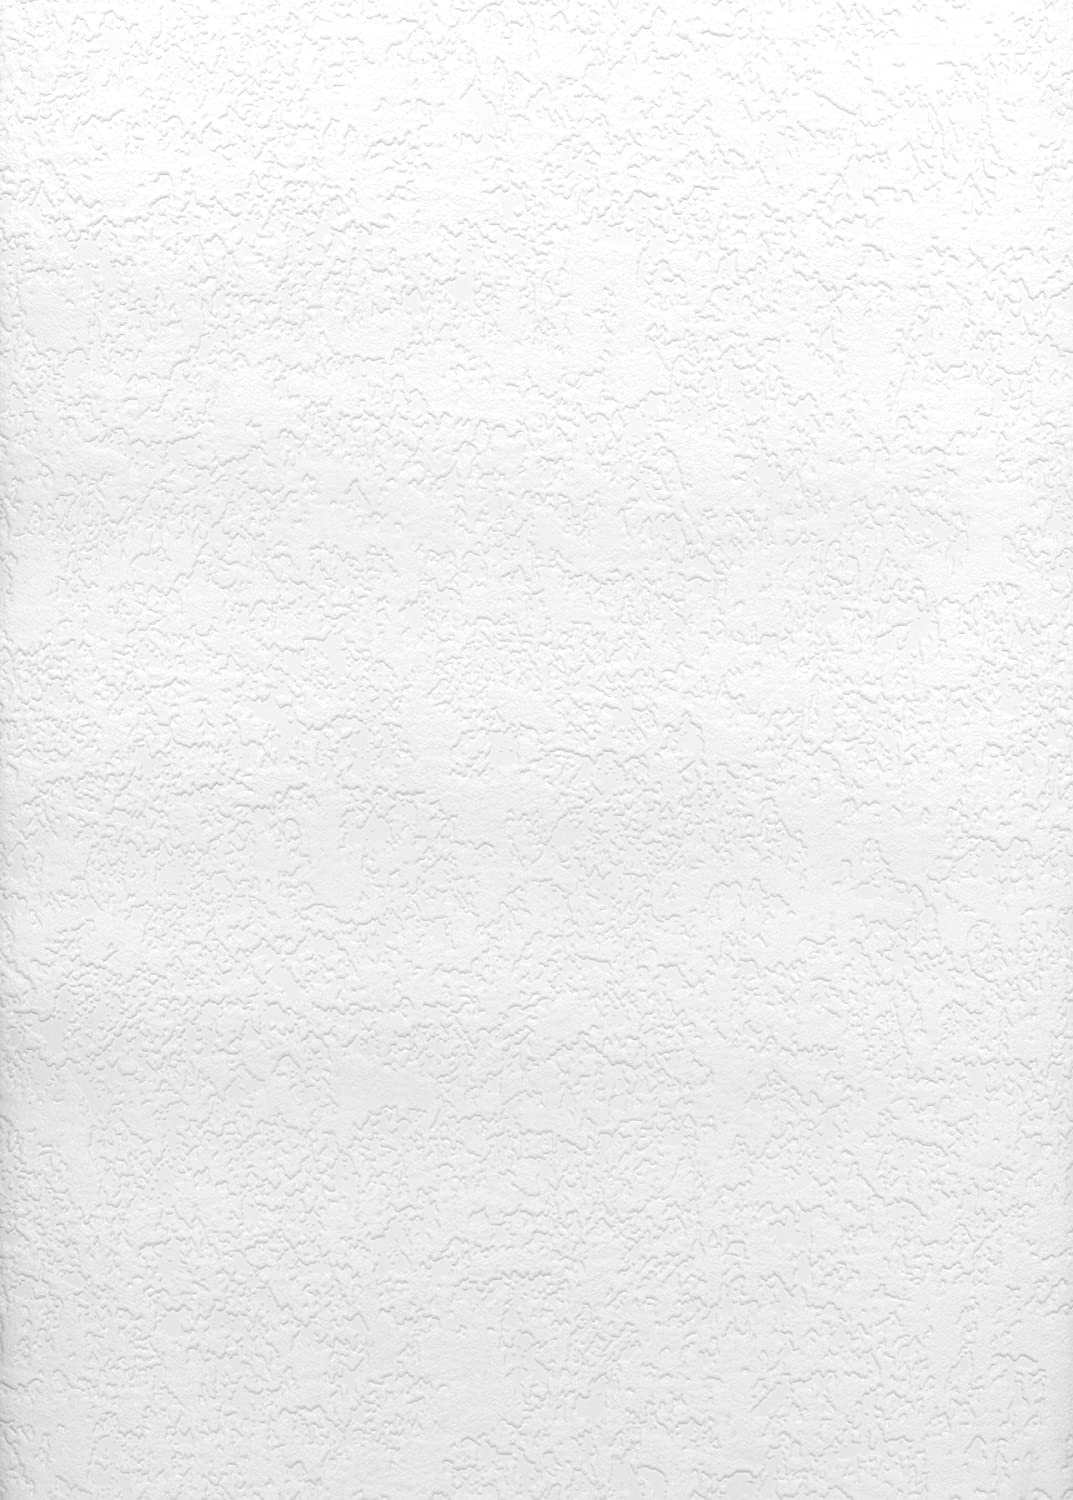 Superieur Brewster 148 96292 Paintable Solutions III Mission Stucco Paintable  Wallpaper Wallpaper   Paintable Textured Wallpaper   Amazon.com